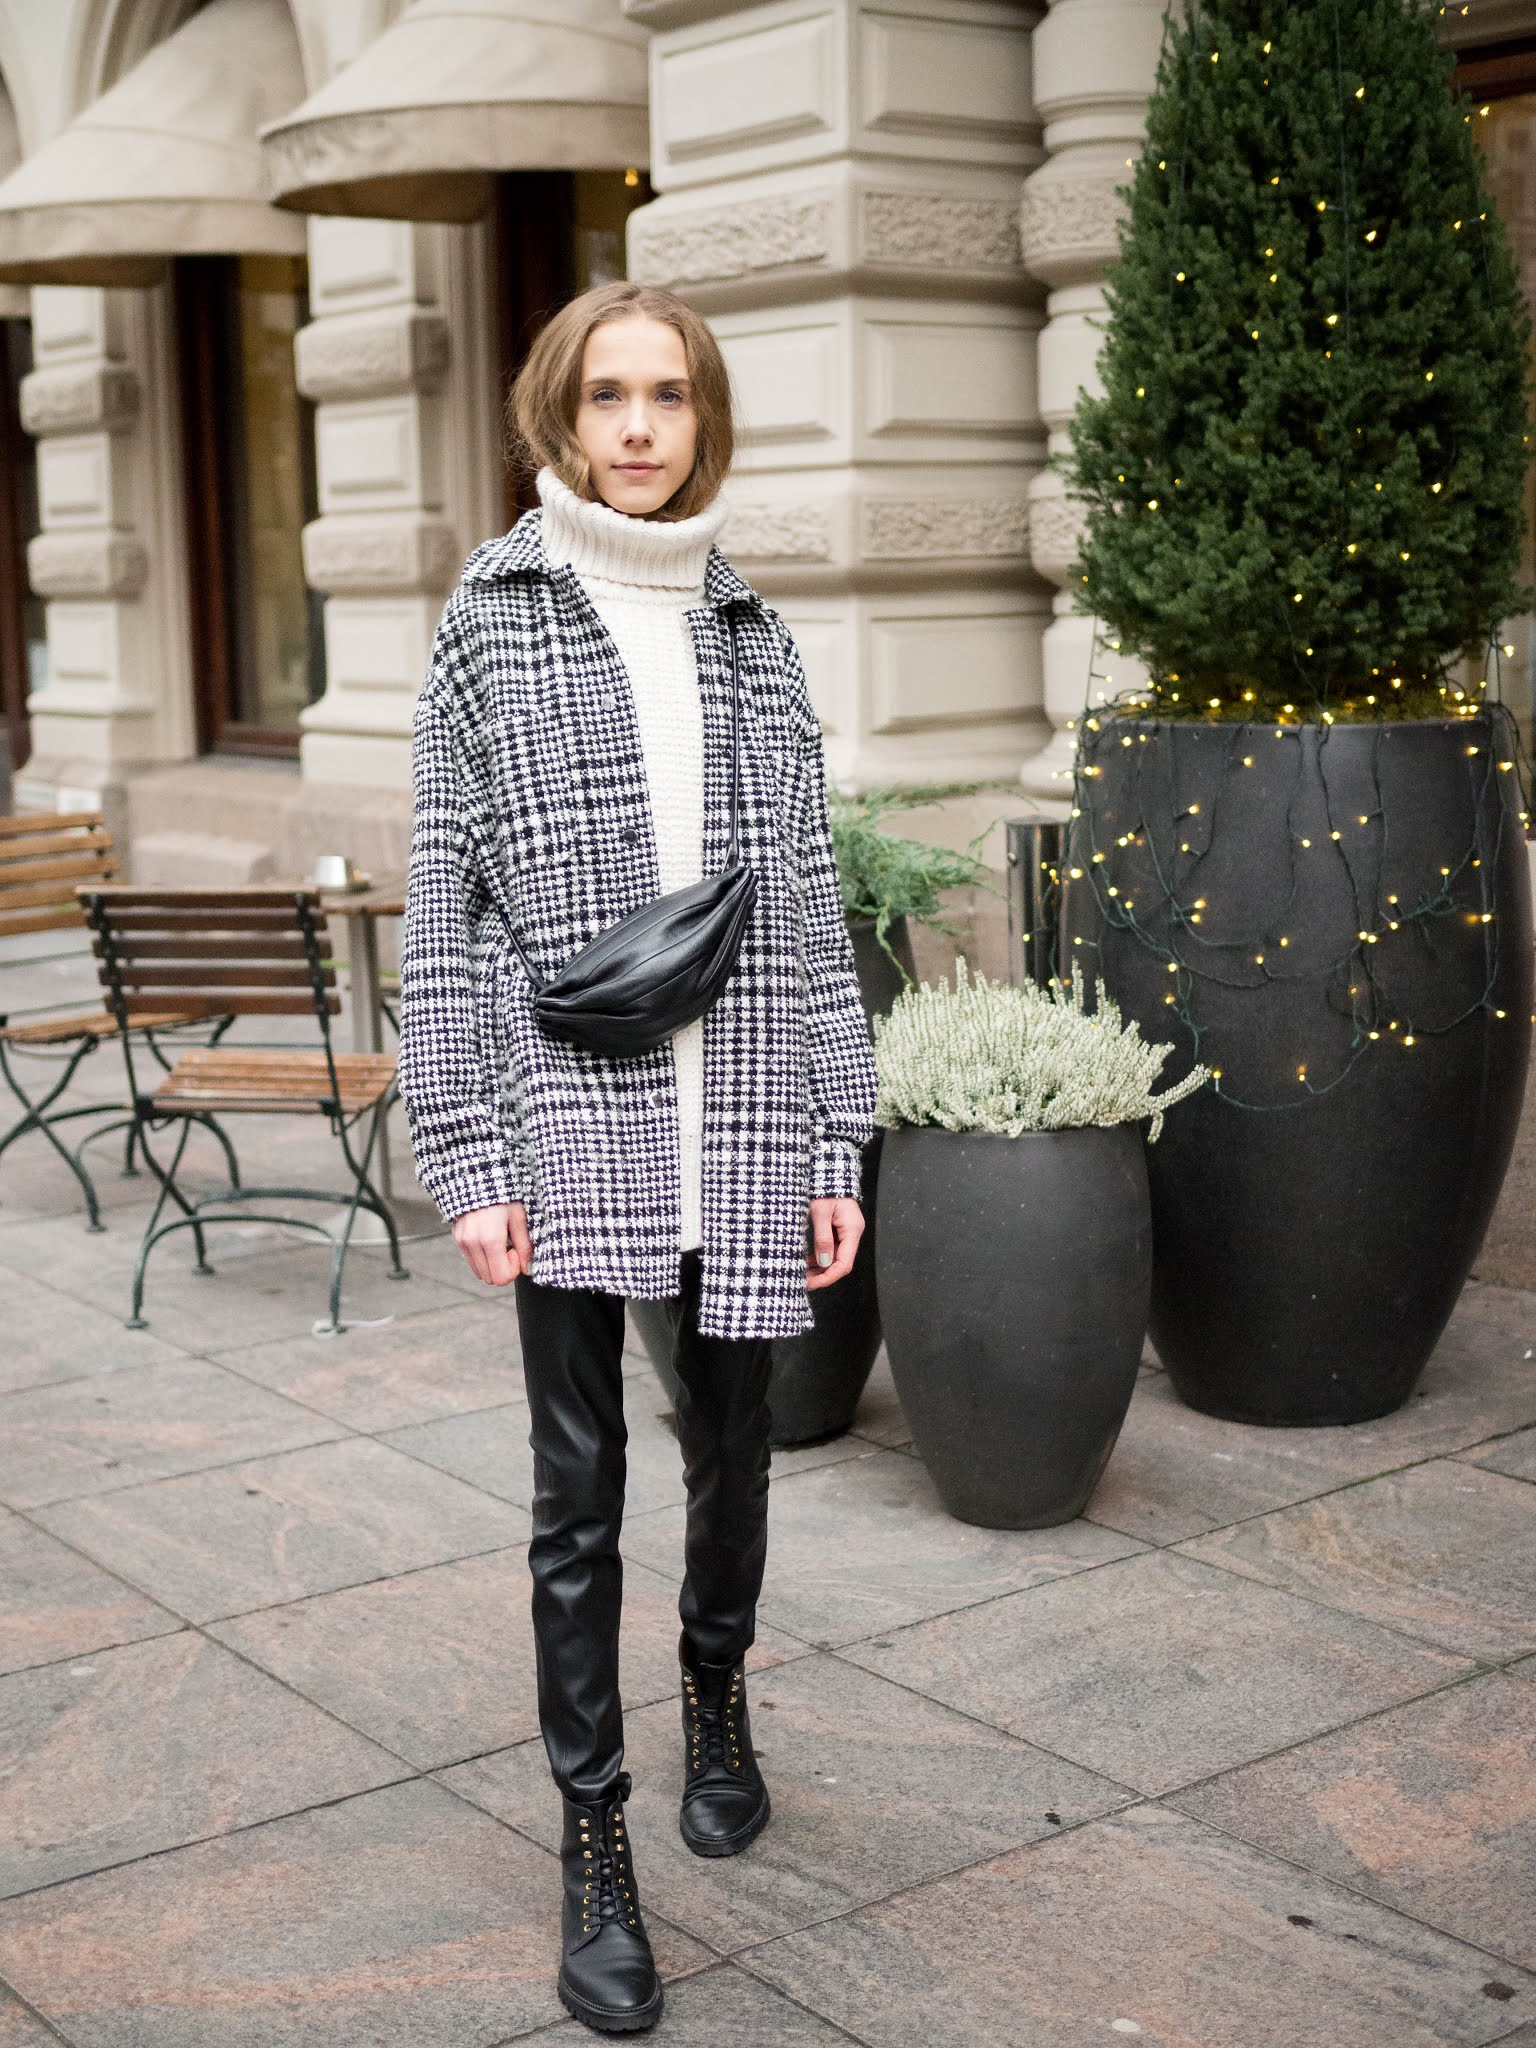 Naisten mustavalkoinen asu // Black and white outfit for women